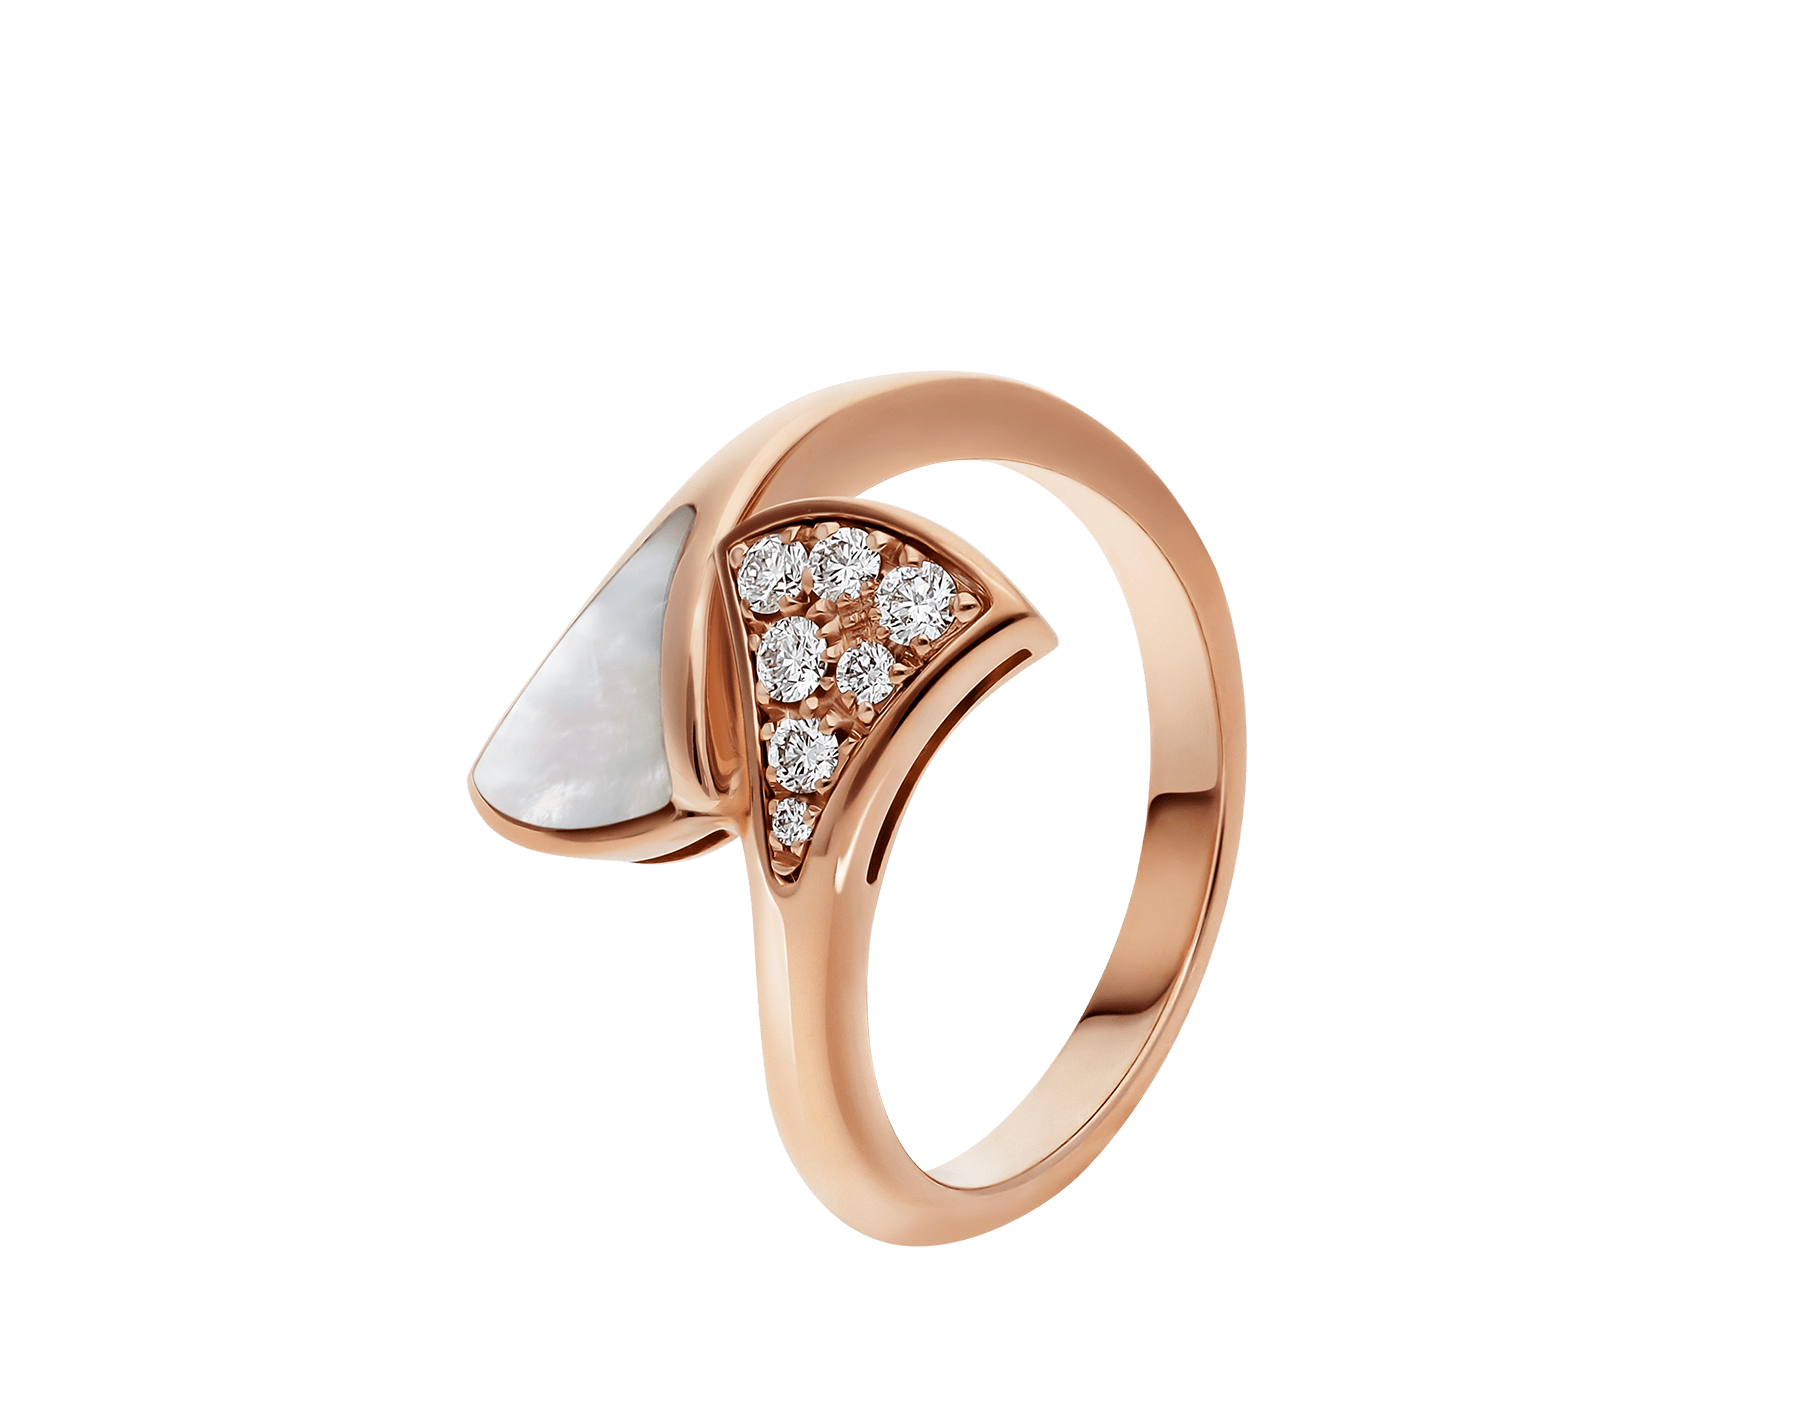 DIVAS' DREAM small contraire ring in 18 kt rose gold, set with mother of pearl and pavé diamonds. AN858003 image 1